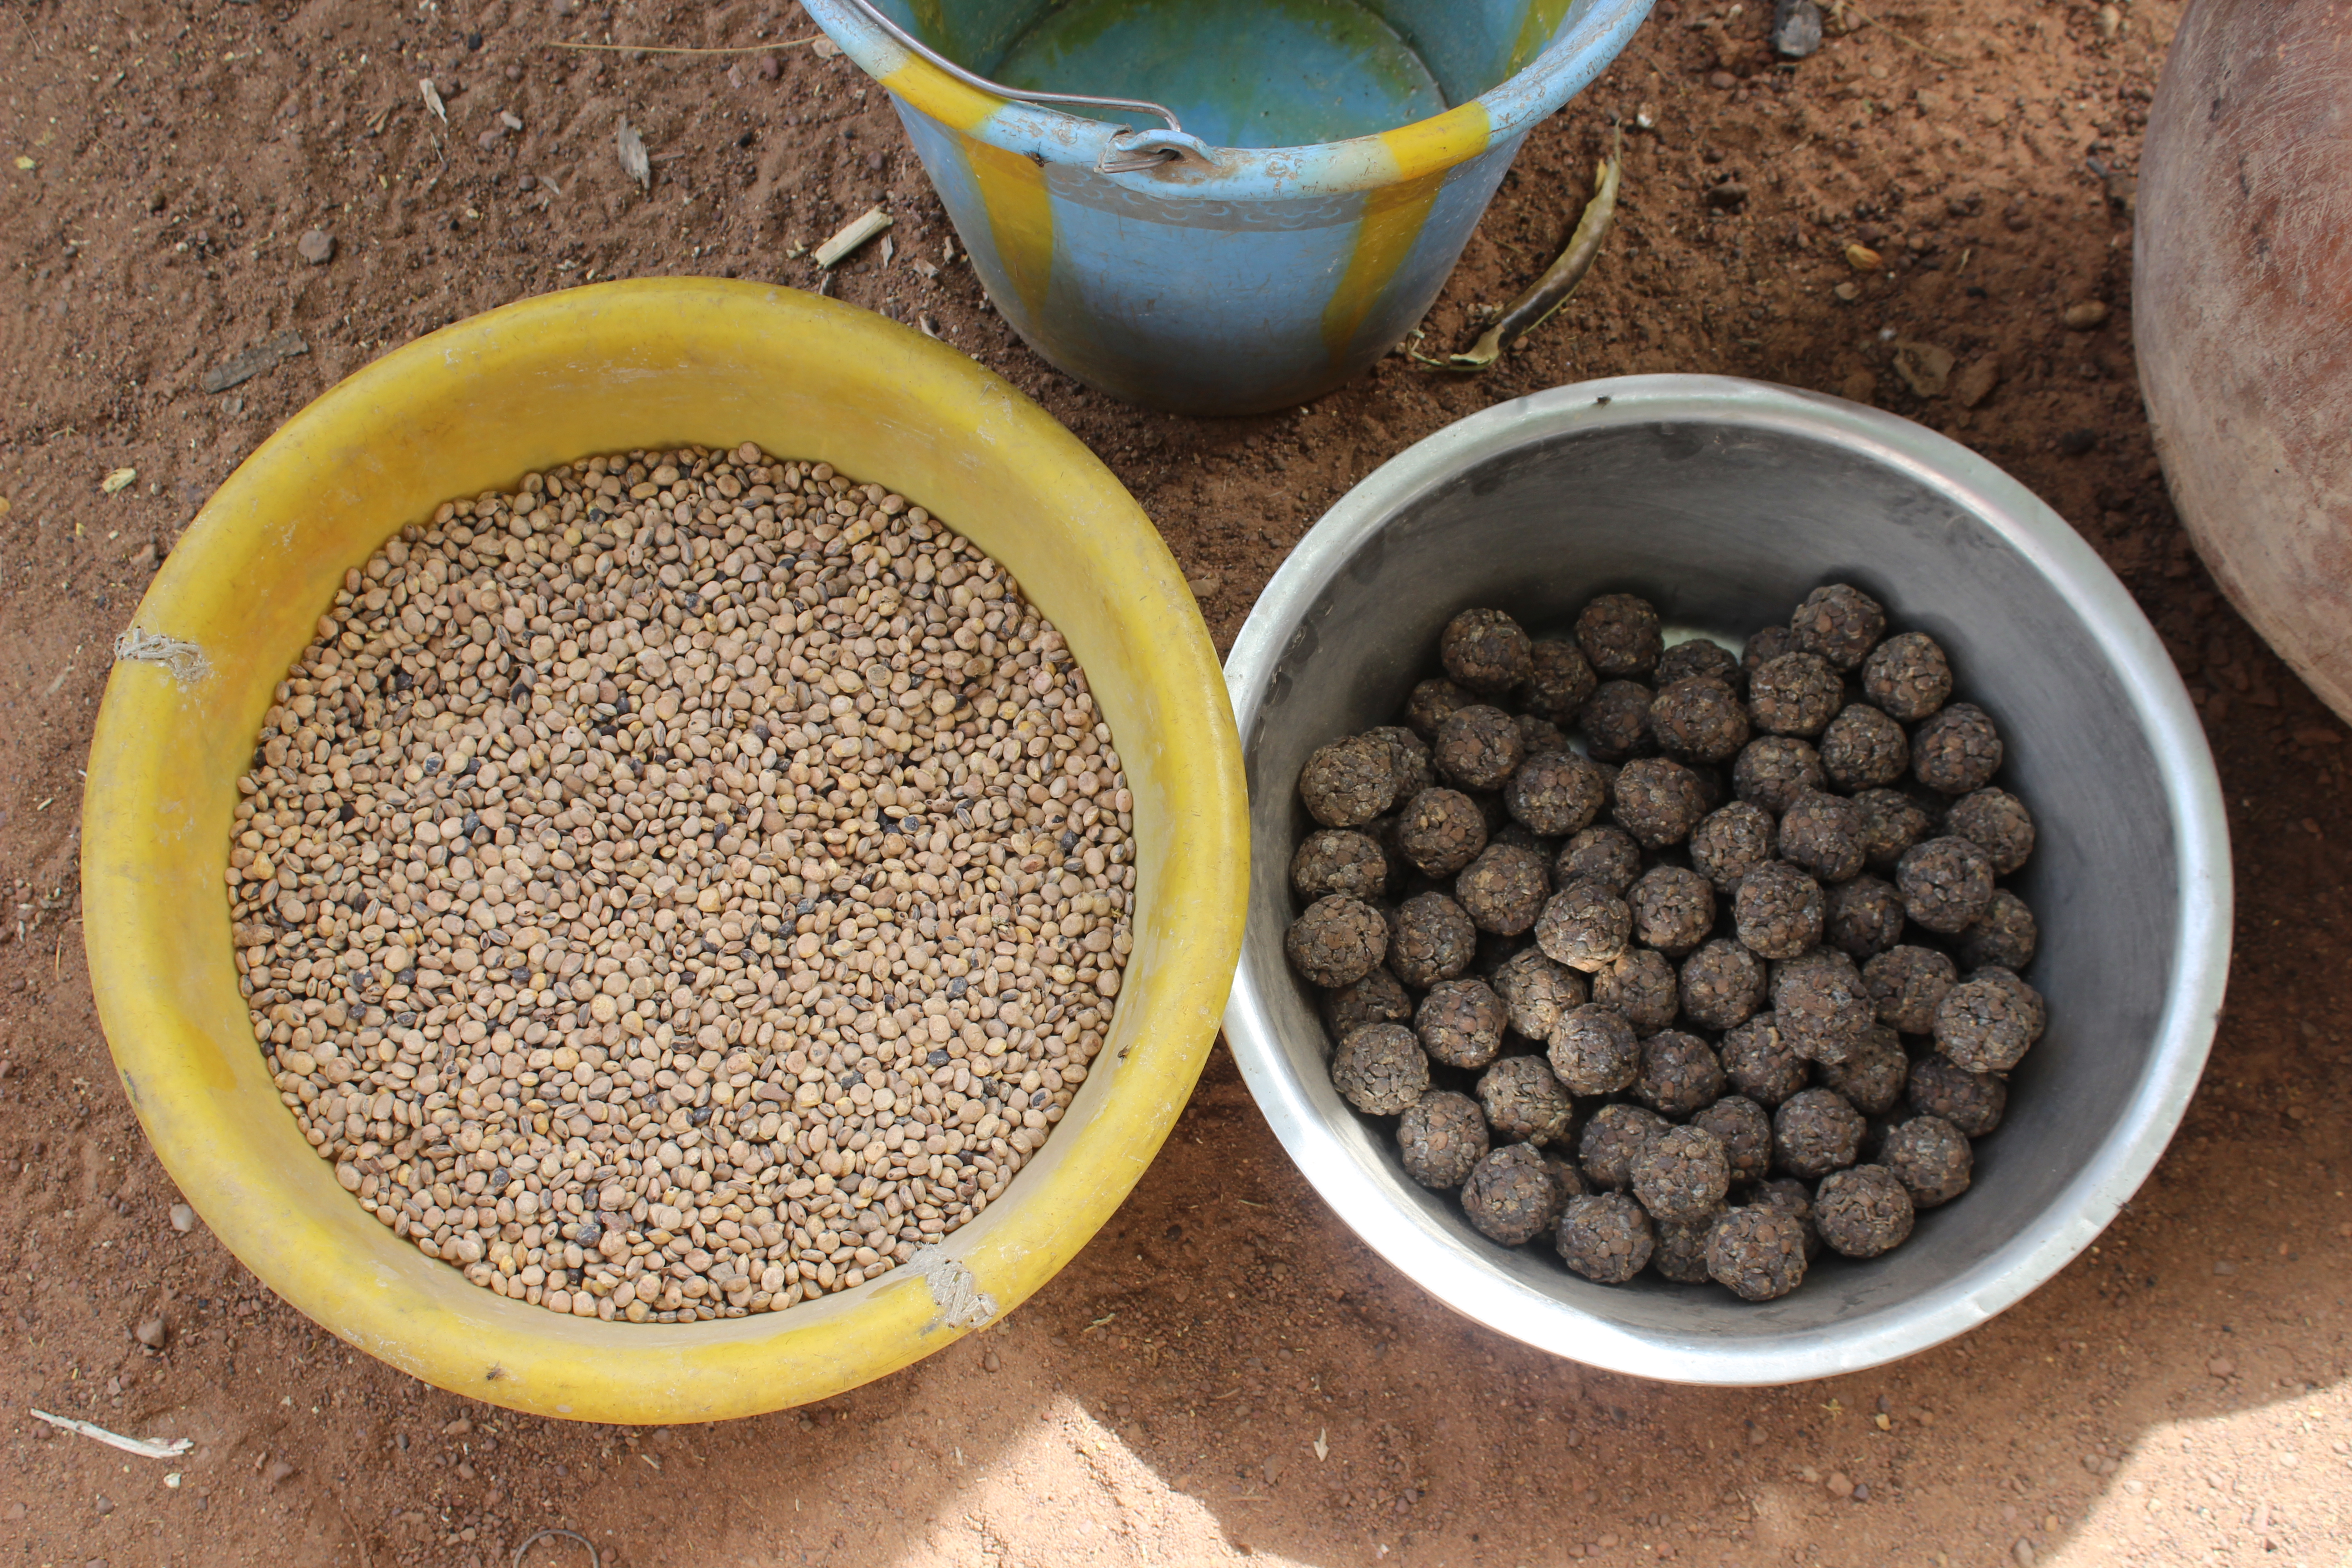 Seeds from Parkia biglobosa pods made into nutritious condiment, 'soumbala' in Mali.